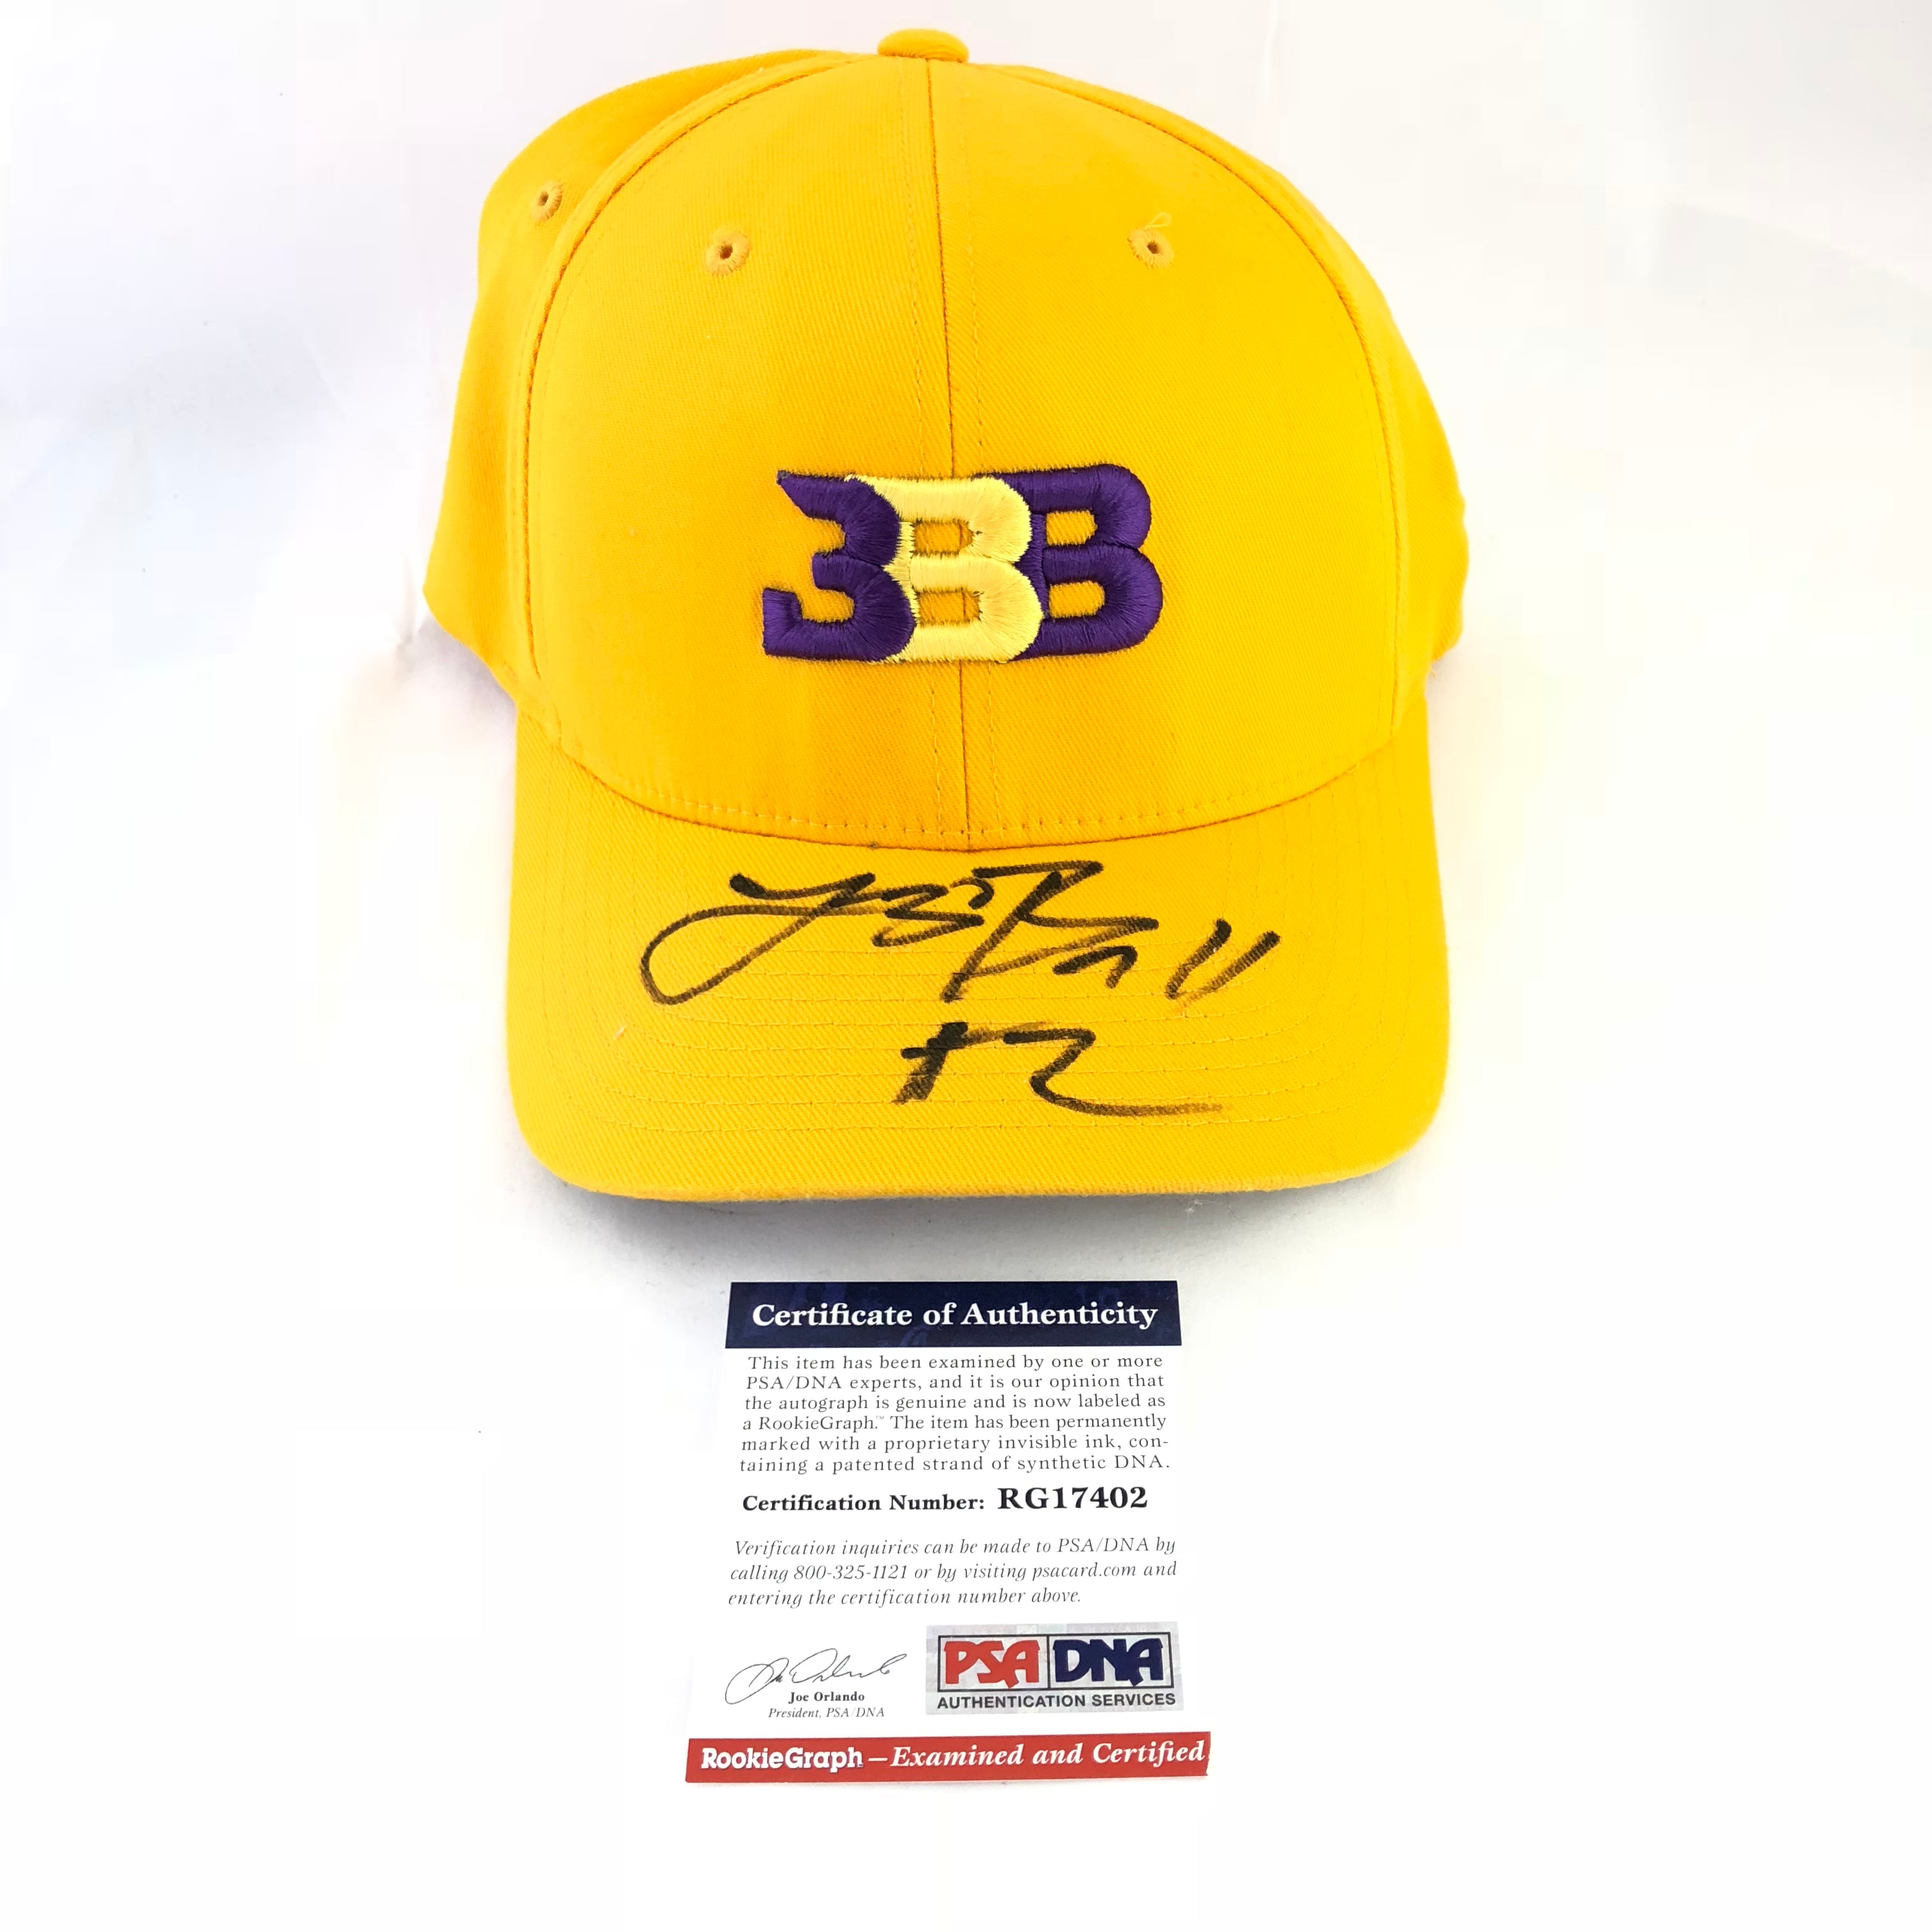 Lonzo Ball signed BBB Hat PSA/DNA Lakers Autographed Big Baller Brand